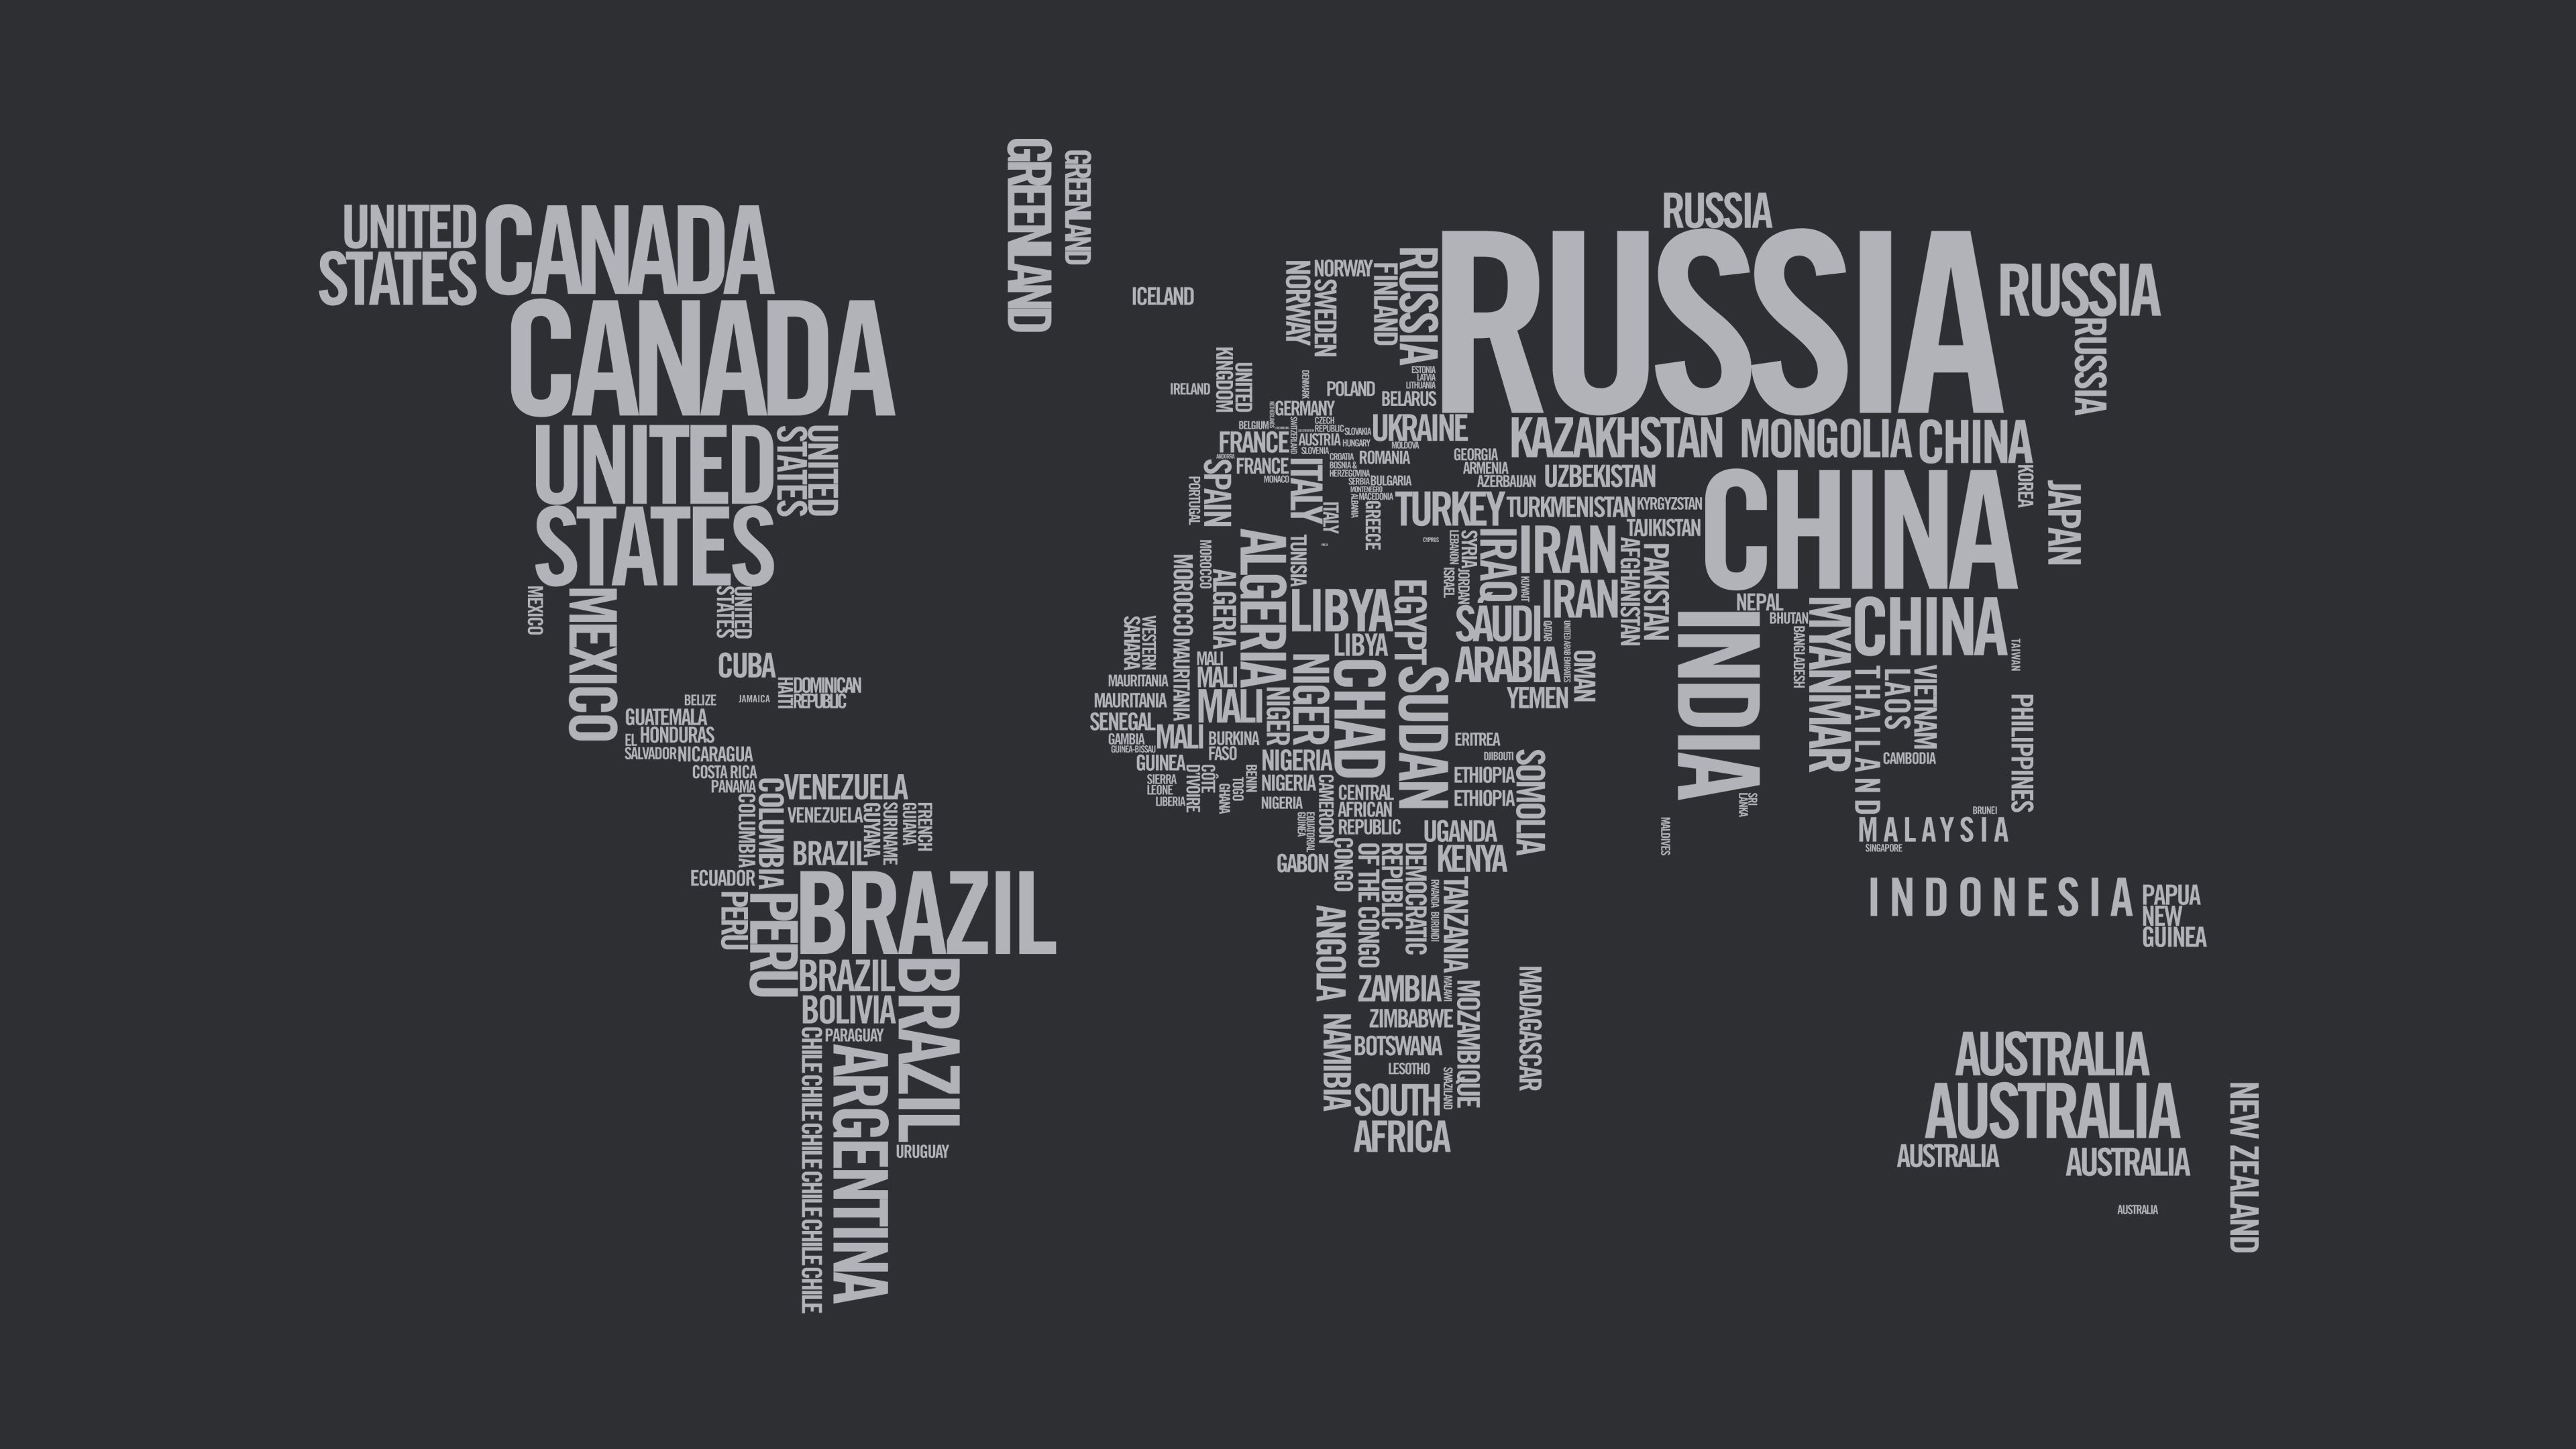 95 countries and nationalities in portuguese portuguese language some graphic language makes ideas simpler and ease the explanation like in this typographic map where countries are replaced by their names within their gumiabroncs Gallery